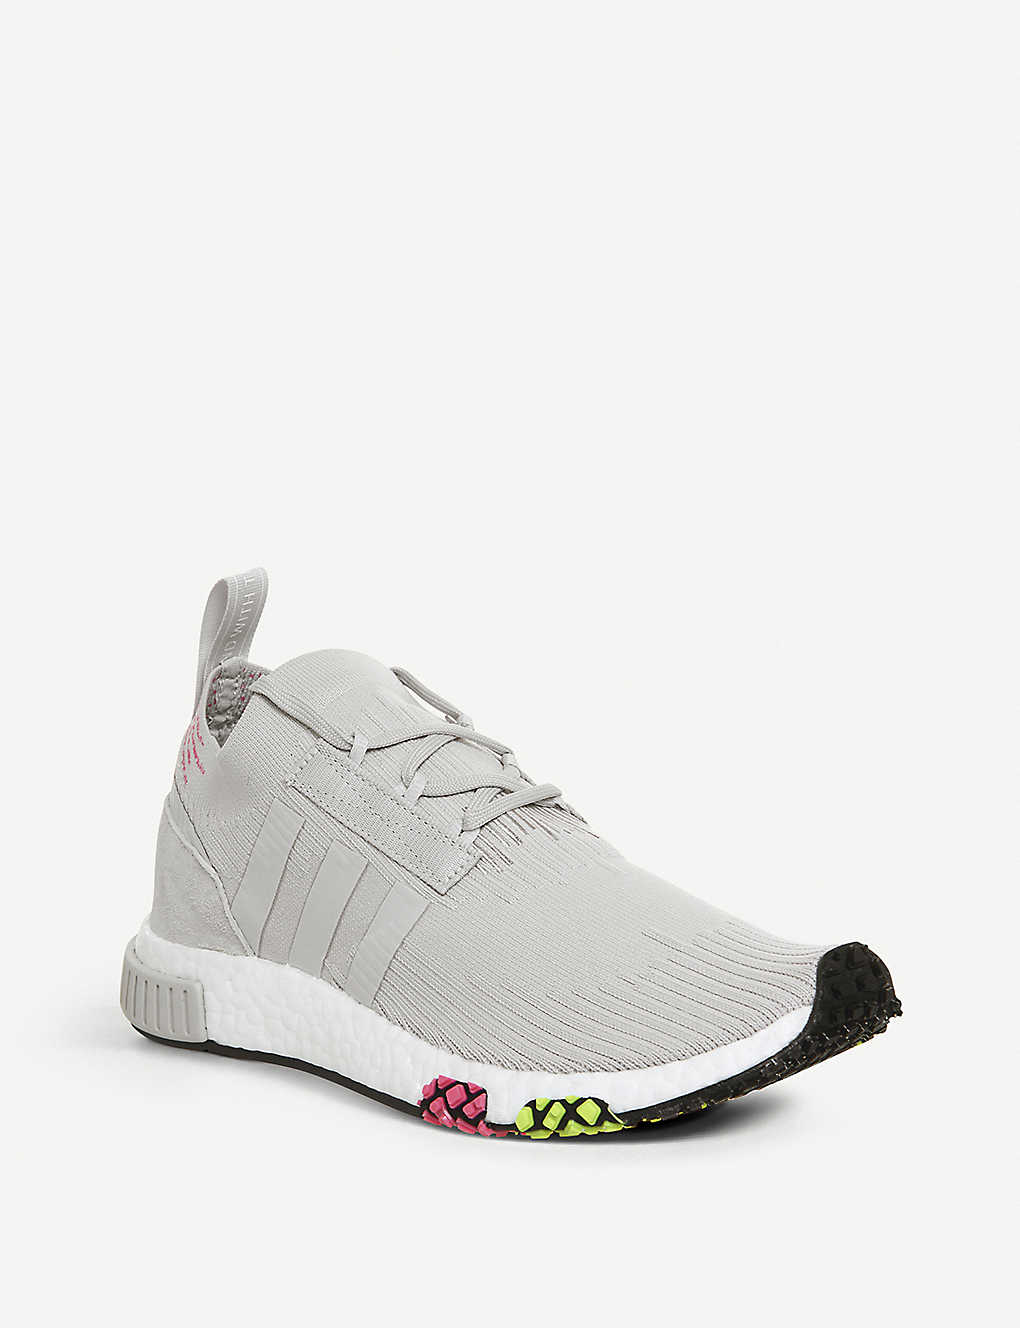 4c3c4b9194cb5 ... Nmd Racer Primeknit and leather trainers - Grey one solar pink ...